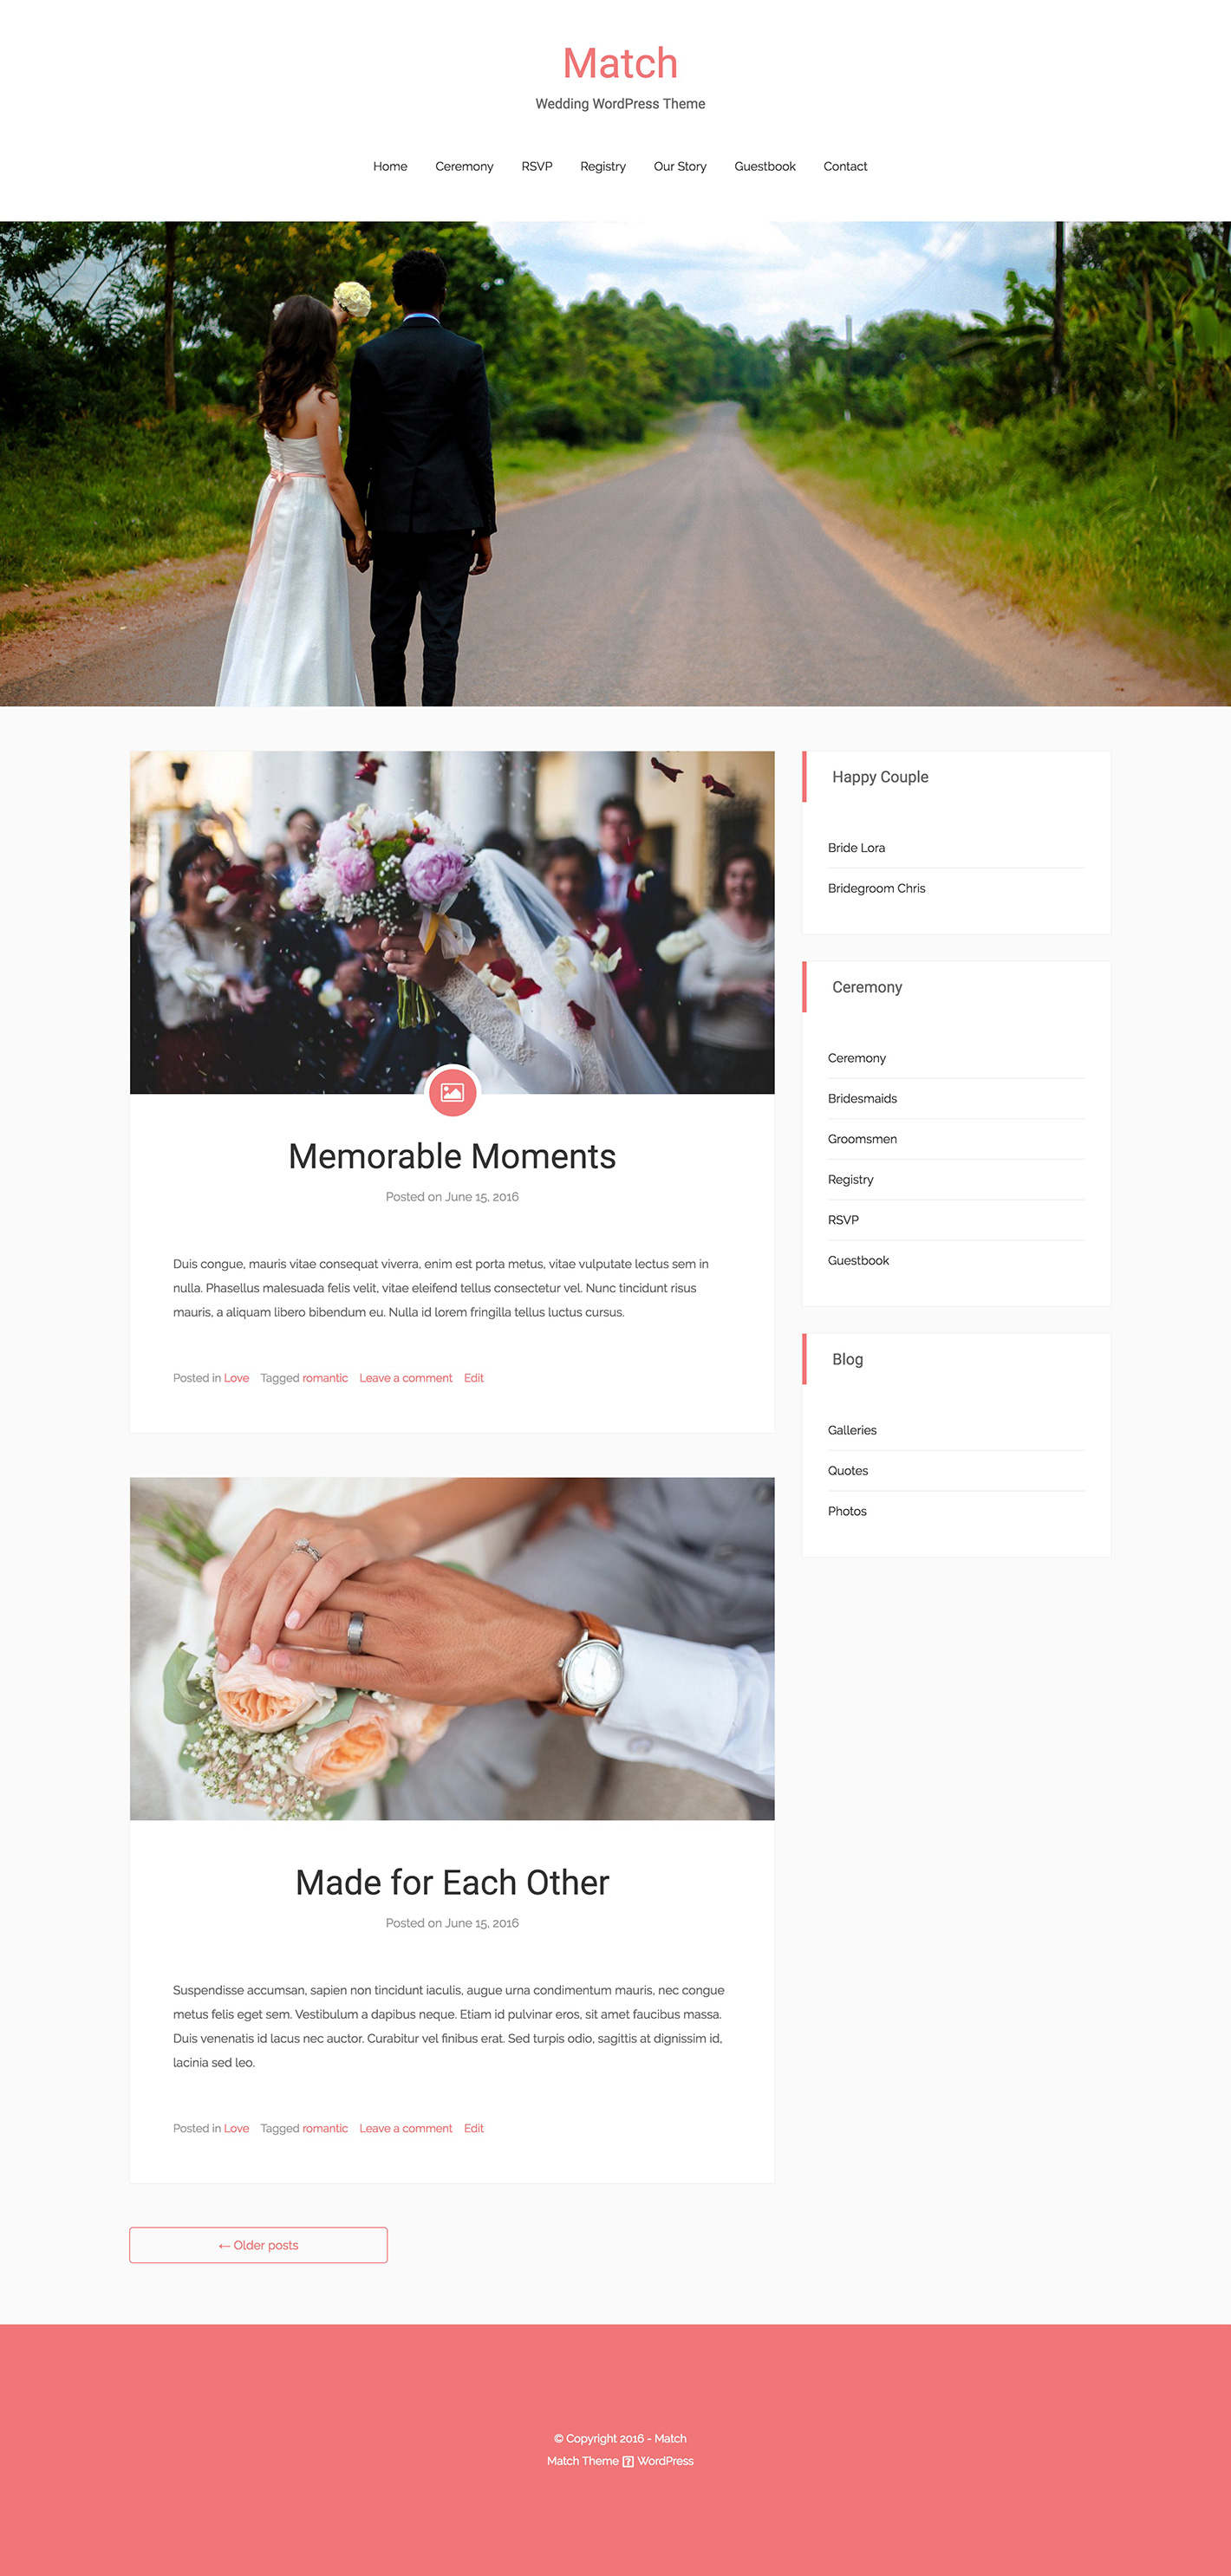 Match Lite - Free Wedding WordPress Theme on DoveThemes